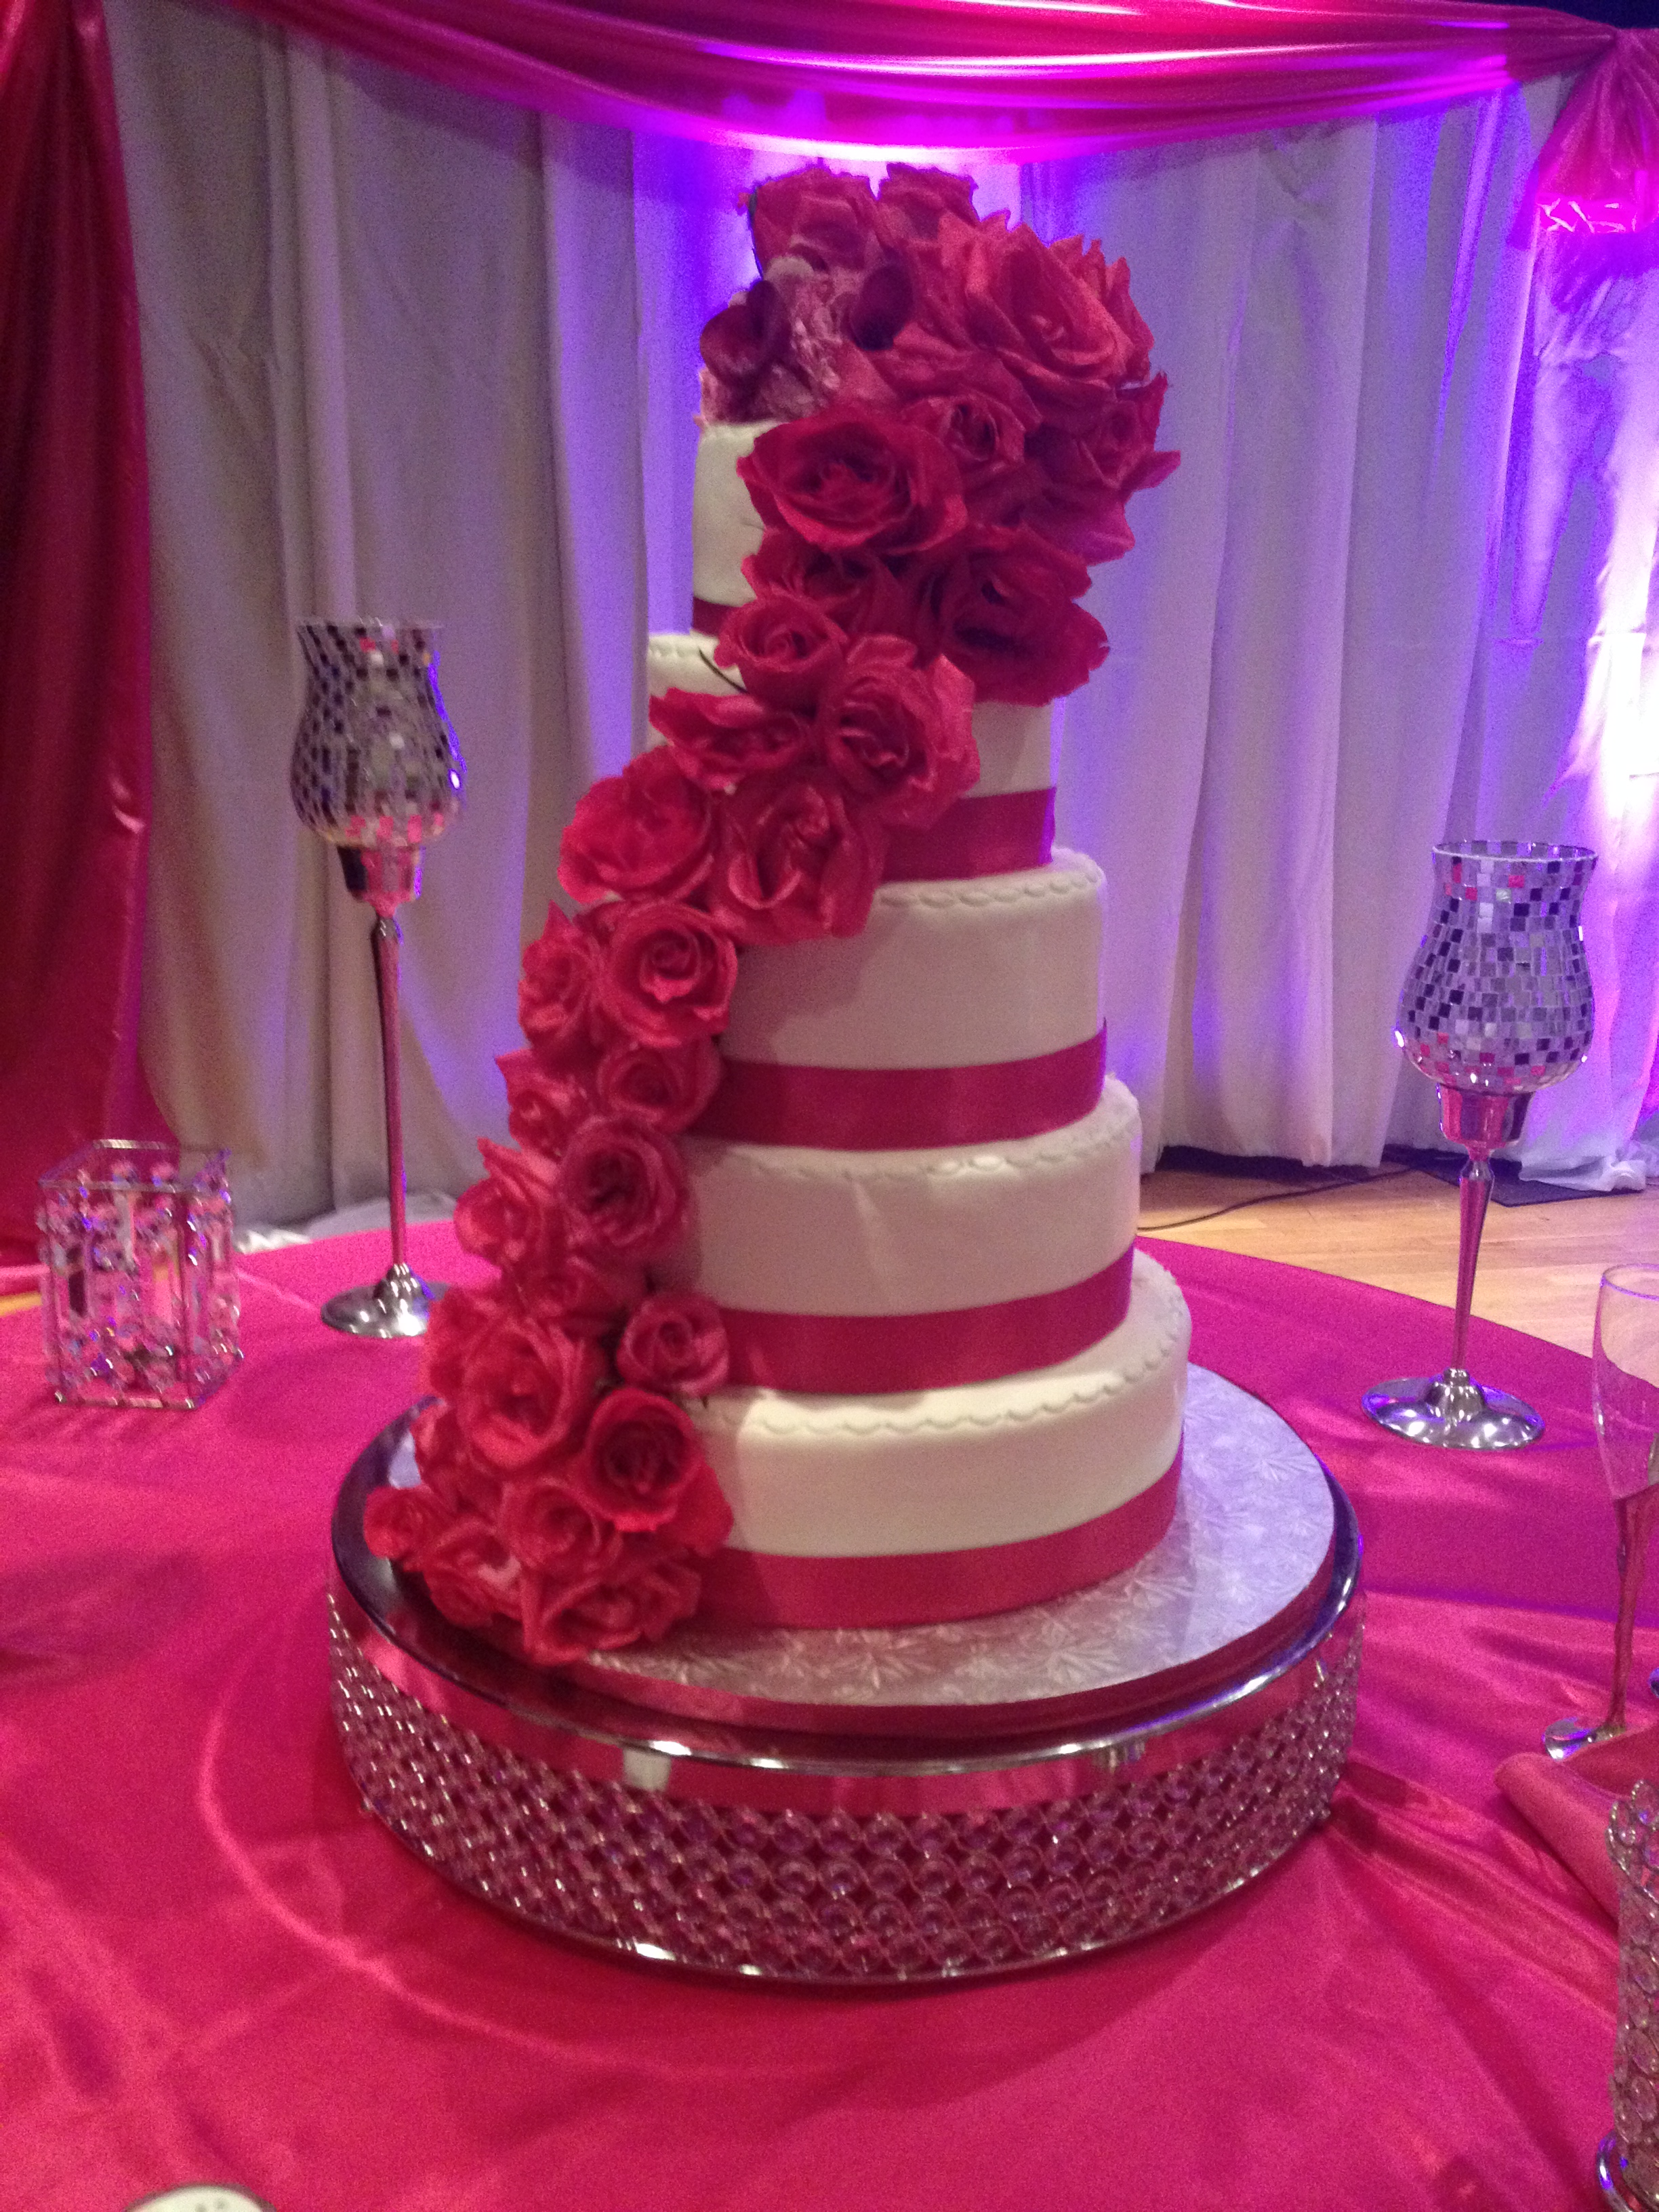 Wedding Cake Delivery We Take Special Pride In Our Creations And Will Insure Prompt Safe Pick Up Is Also Available